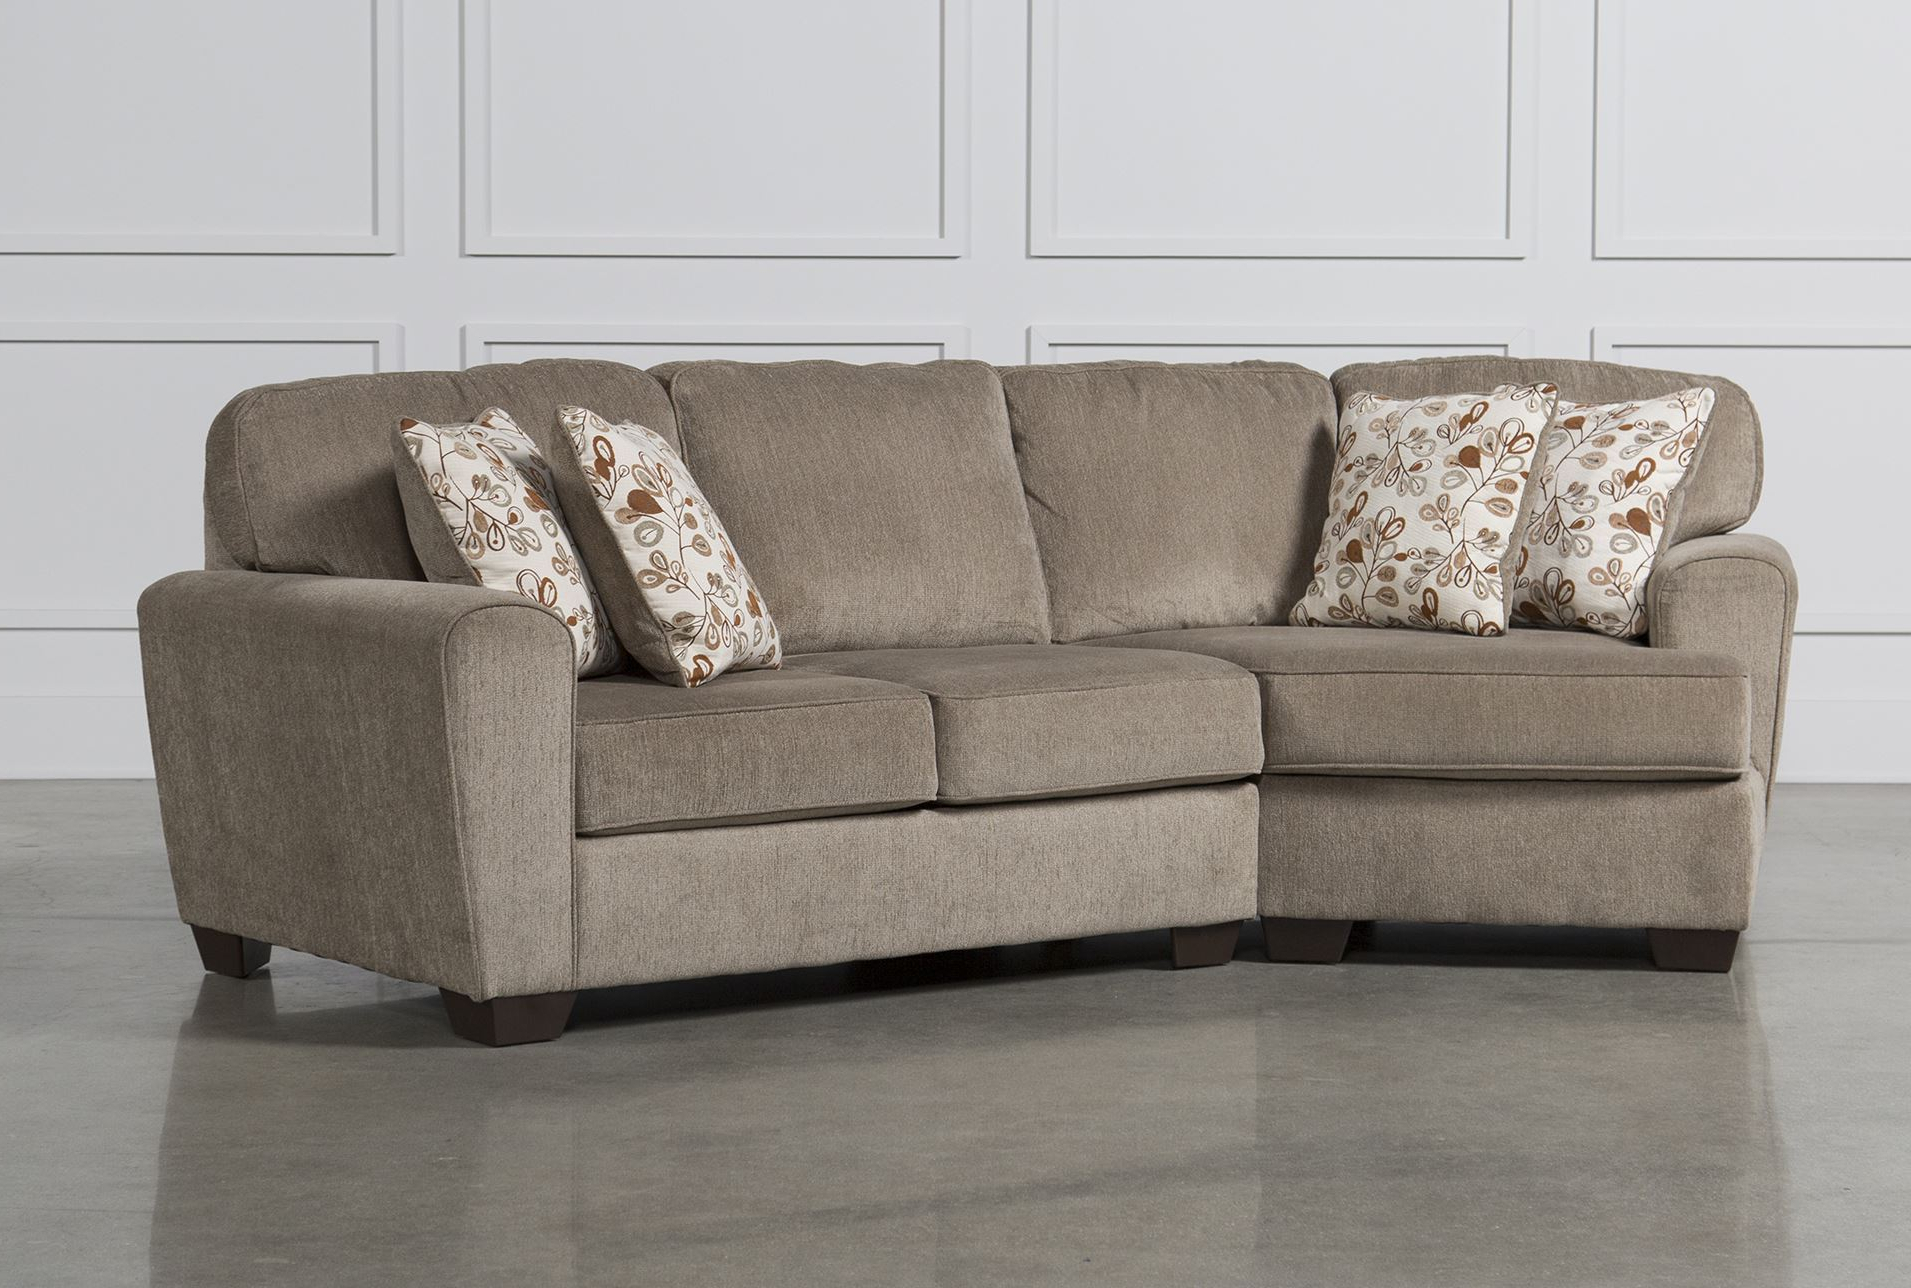 Kerri 2 Piece Sectionals With Raf Chaise With Regard To Current Awesome Collection Of 2 Piece Chaise Sectional In Kerri 2 Piece (View 10 of 20)